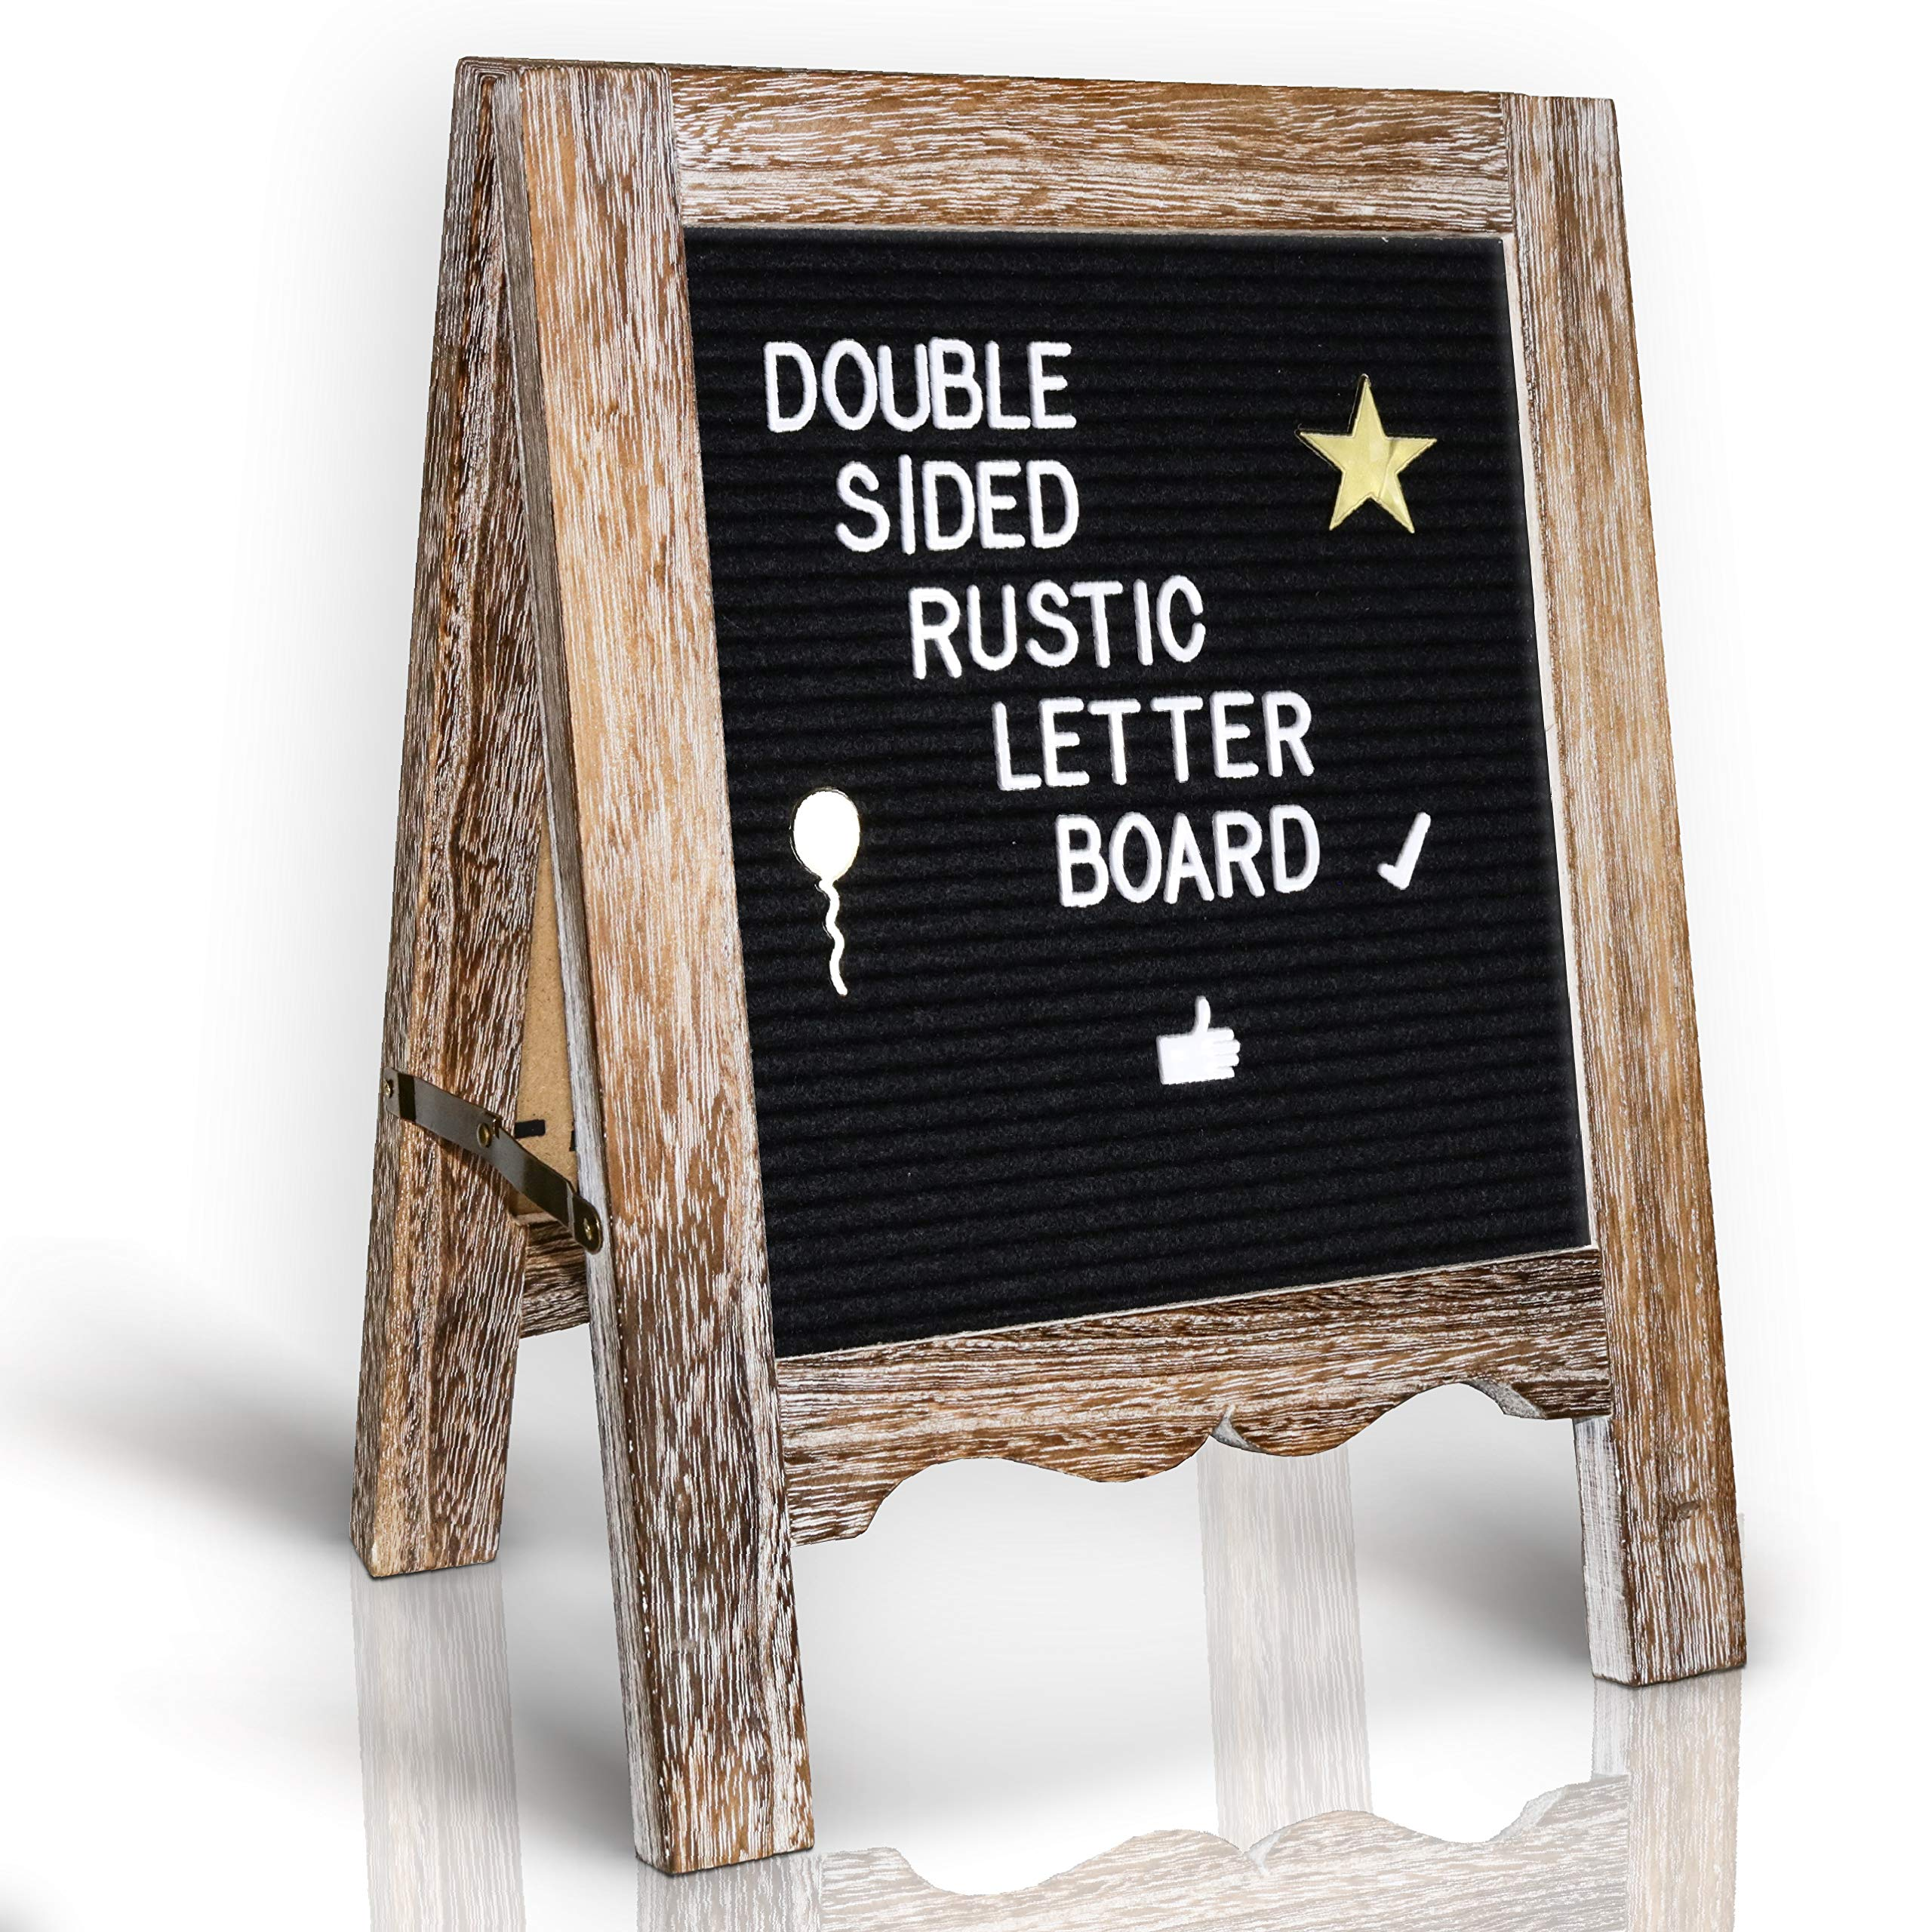 Rustic Felt Letter Board 15x11|Double Sided Black, Grey 792 White, Gold Characters| Perfect Letter Signboard, Message Board, Announcement Sign| Screw Driver, Wall Hanger, Letter Organizer Box, Bag